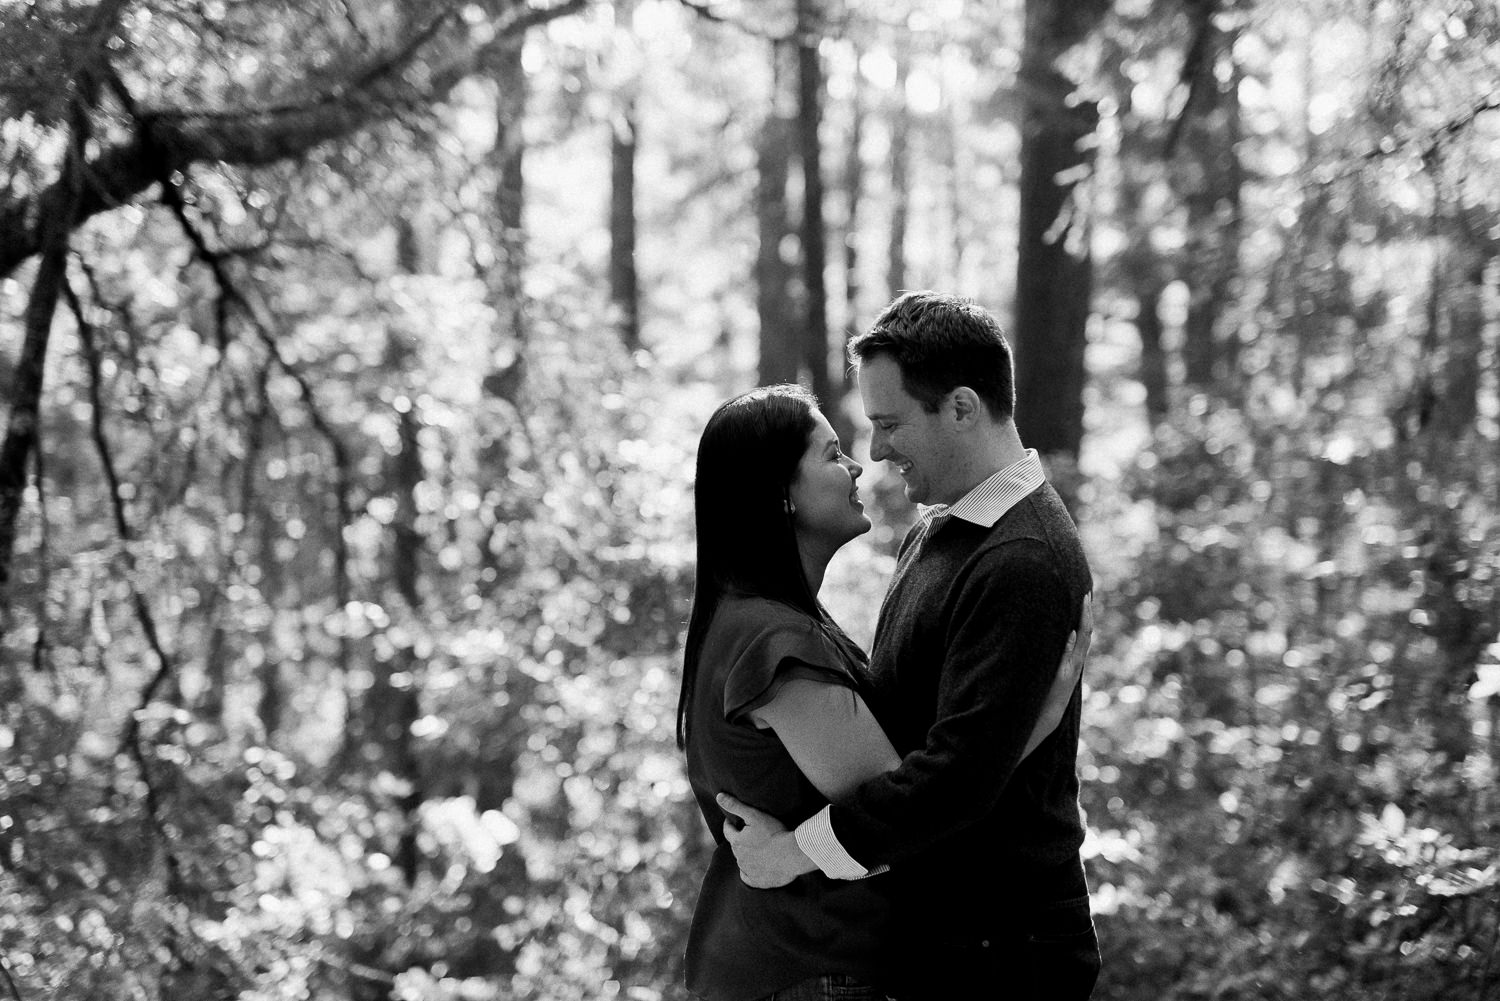 BIg Basin Redwoods State Park Engagement Session 019.jpg